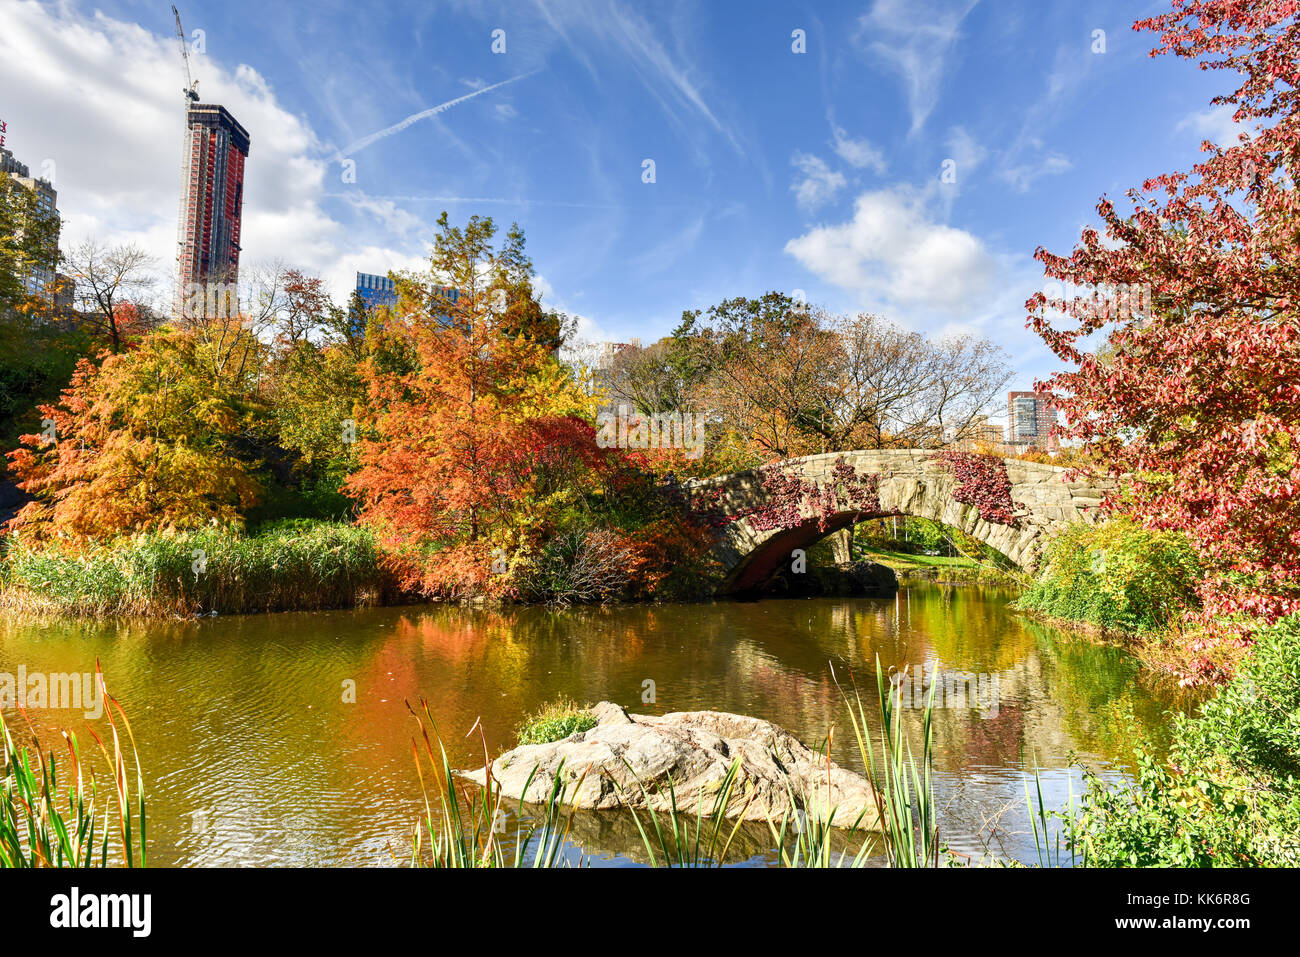 Gapstow Bridge in the autumn in Central Park, New York City. - Stock Image